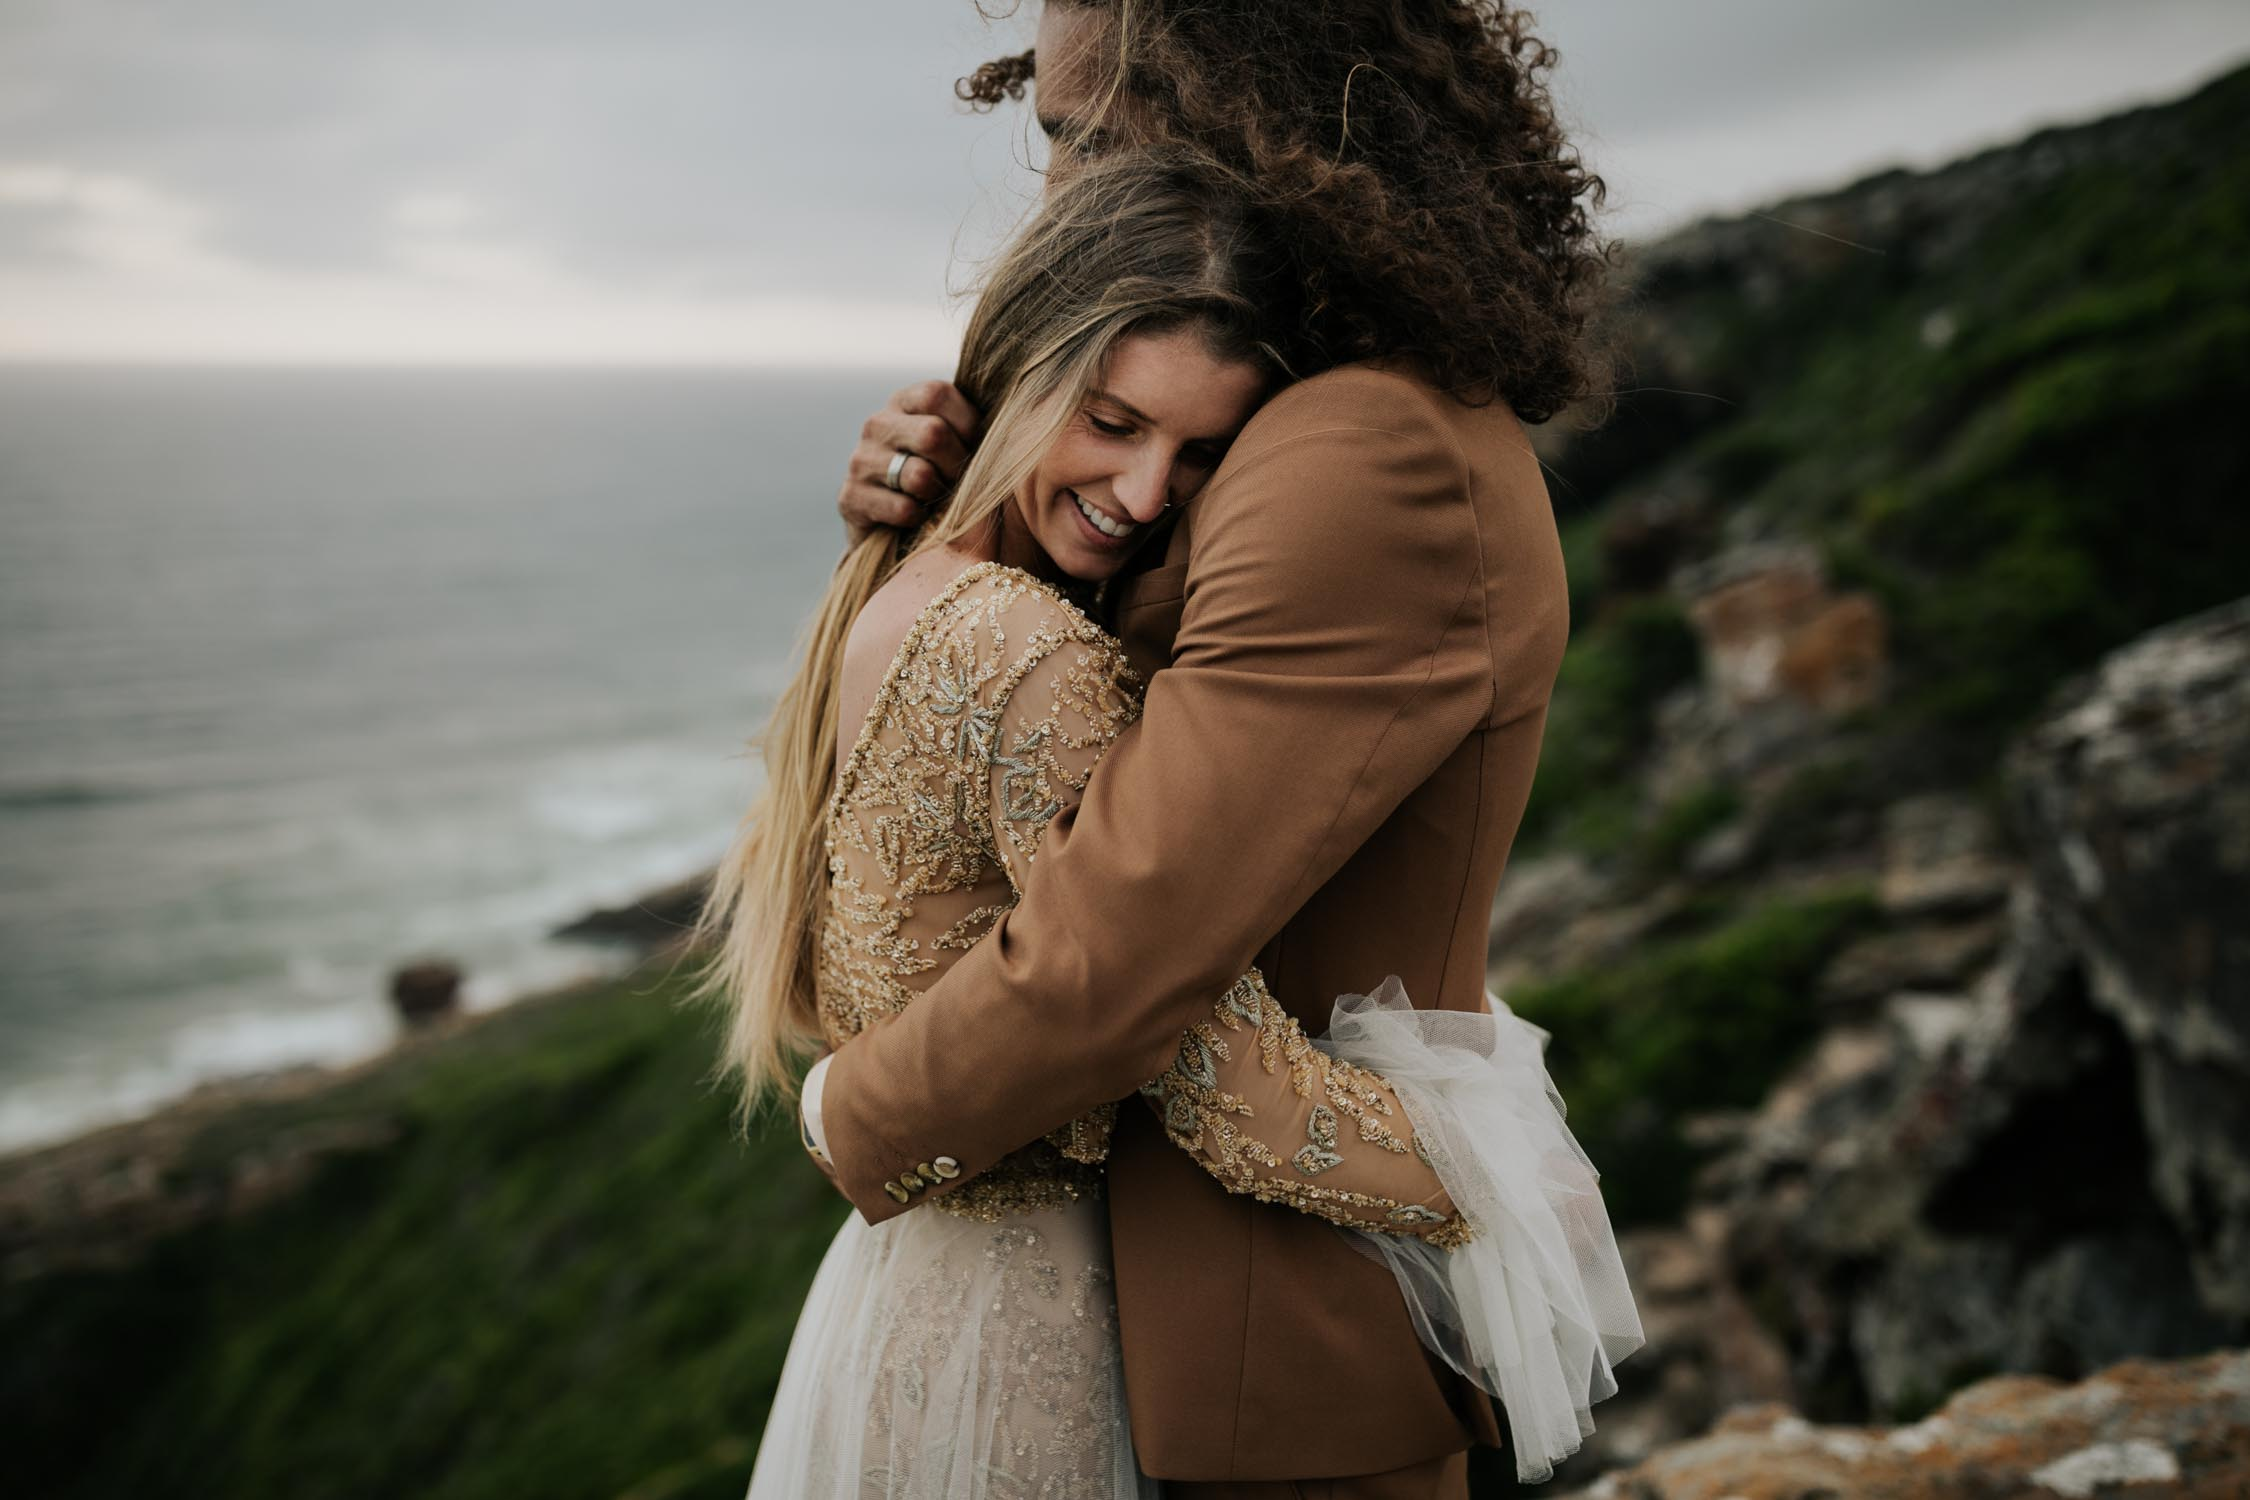 Bride and groom embrace beach wedding portrait session